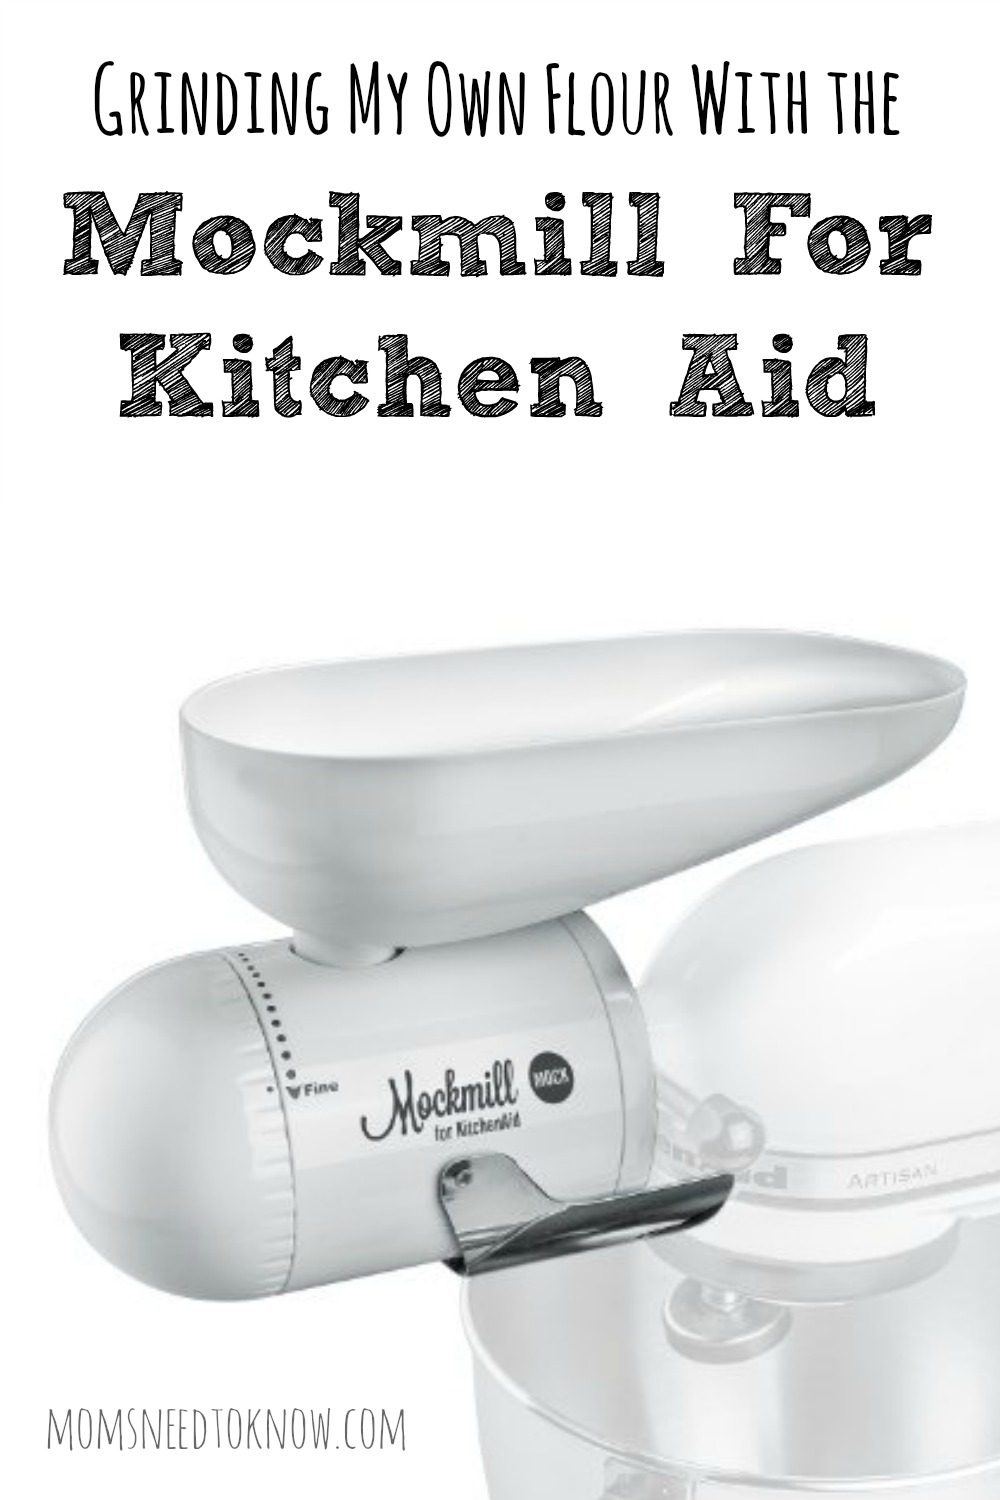 There are so many benefits to grinding my own flour - least of all is the cost! The Mockmill for Kitchen Aid makes it so easy to do at a reduced cost!